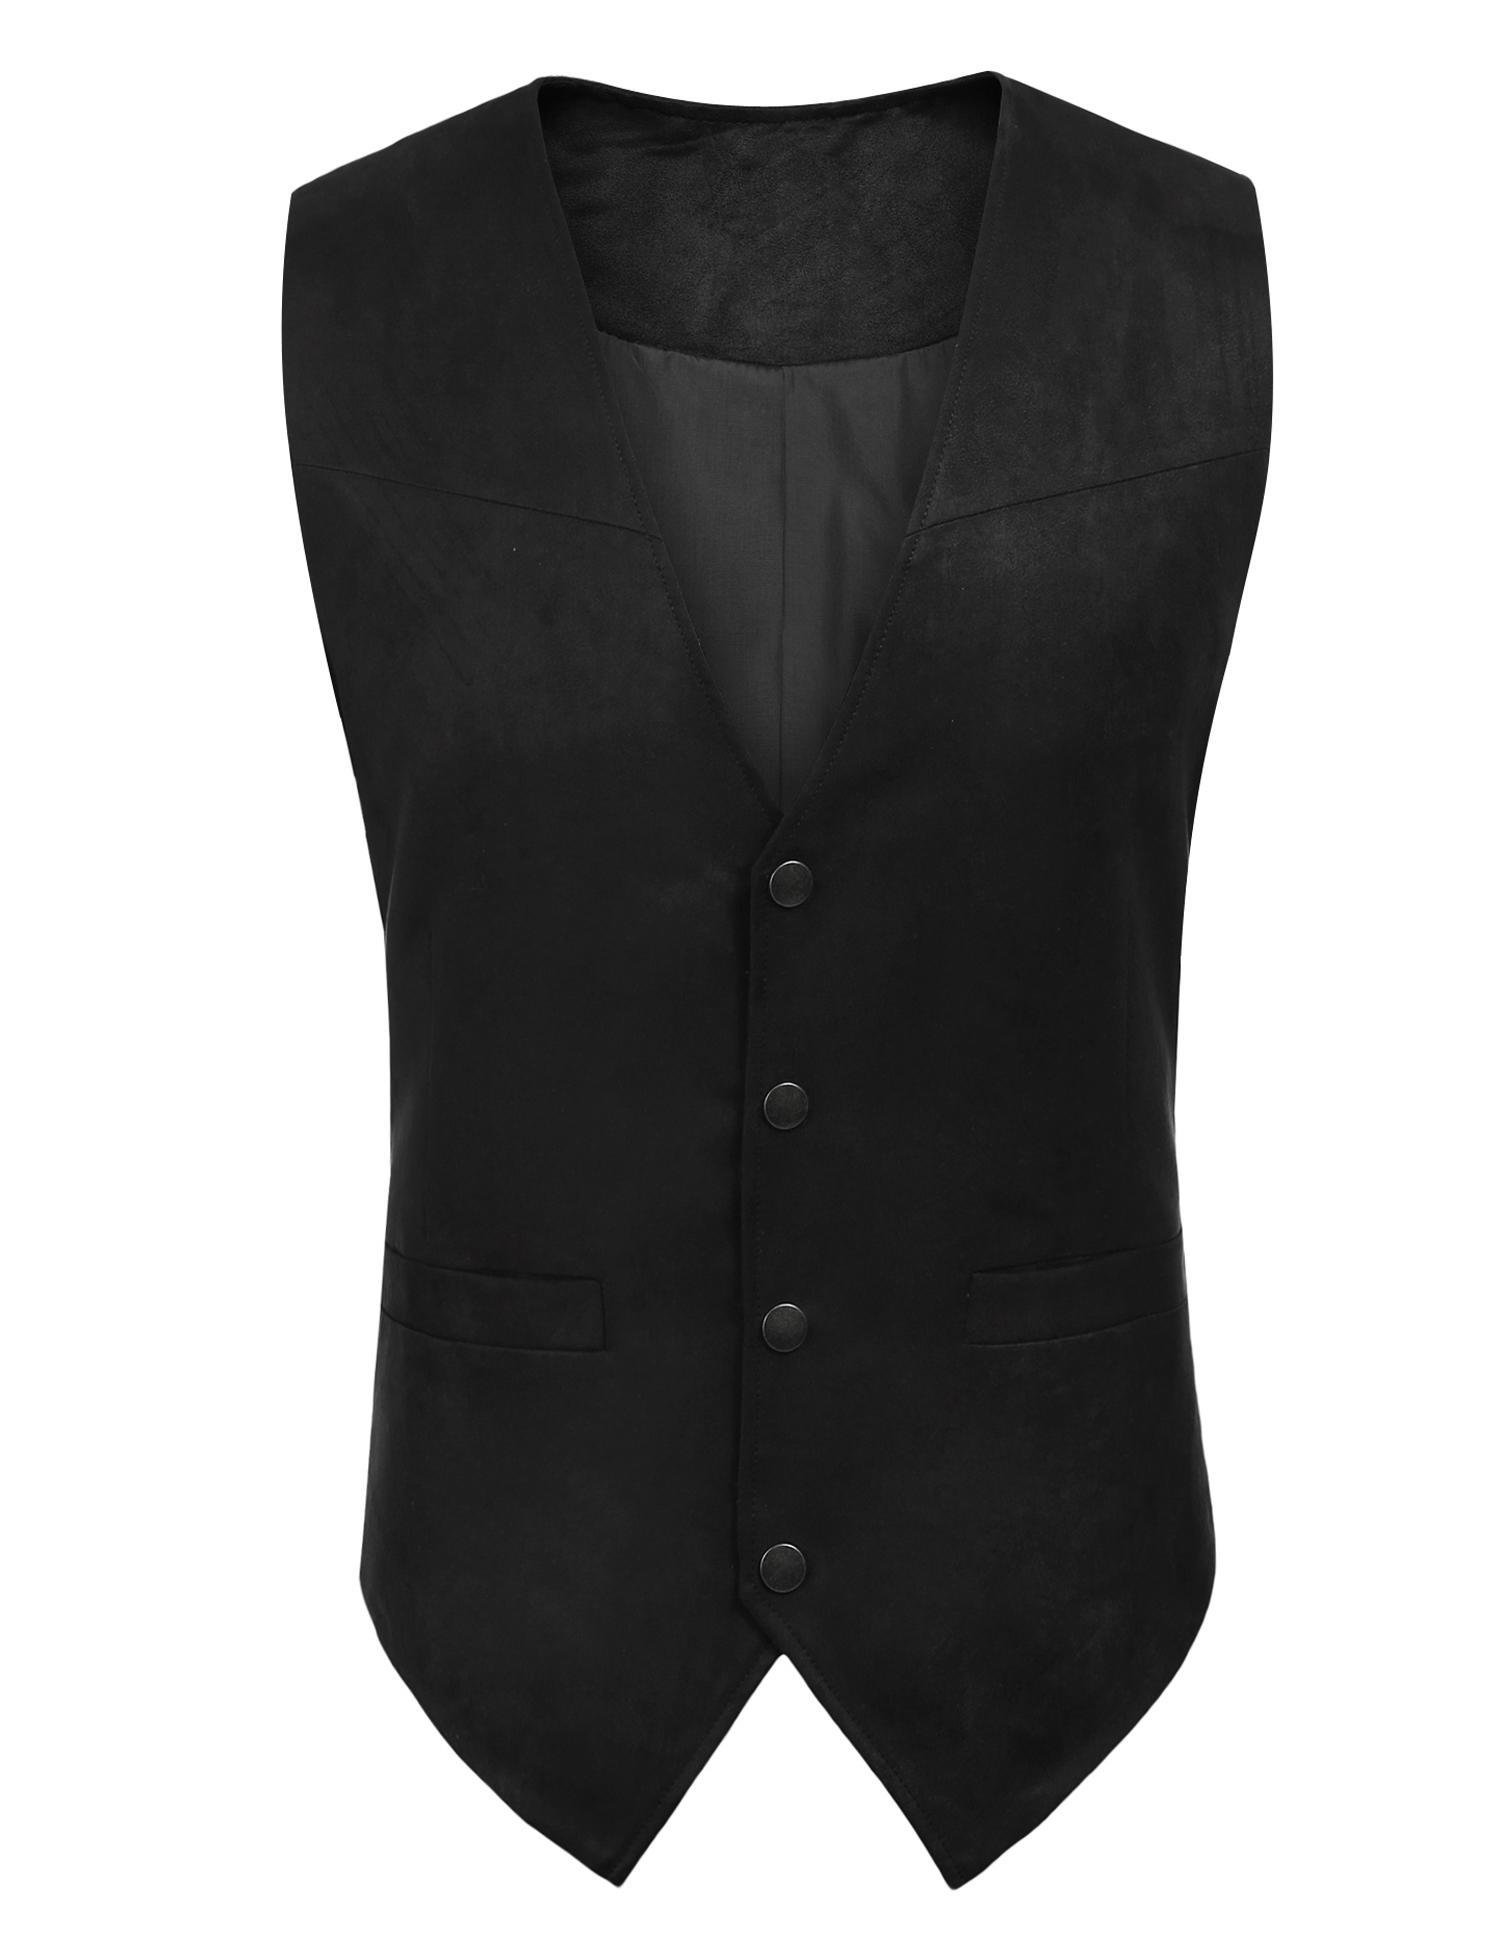 Simbama Men's Casual Western Suede Leather Vest Black M